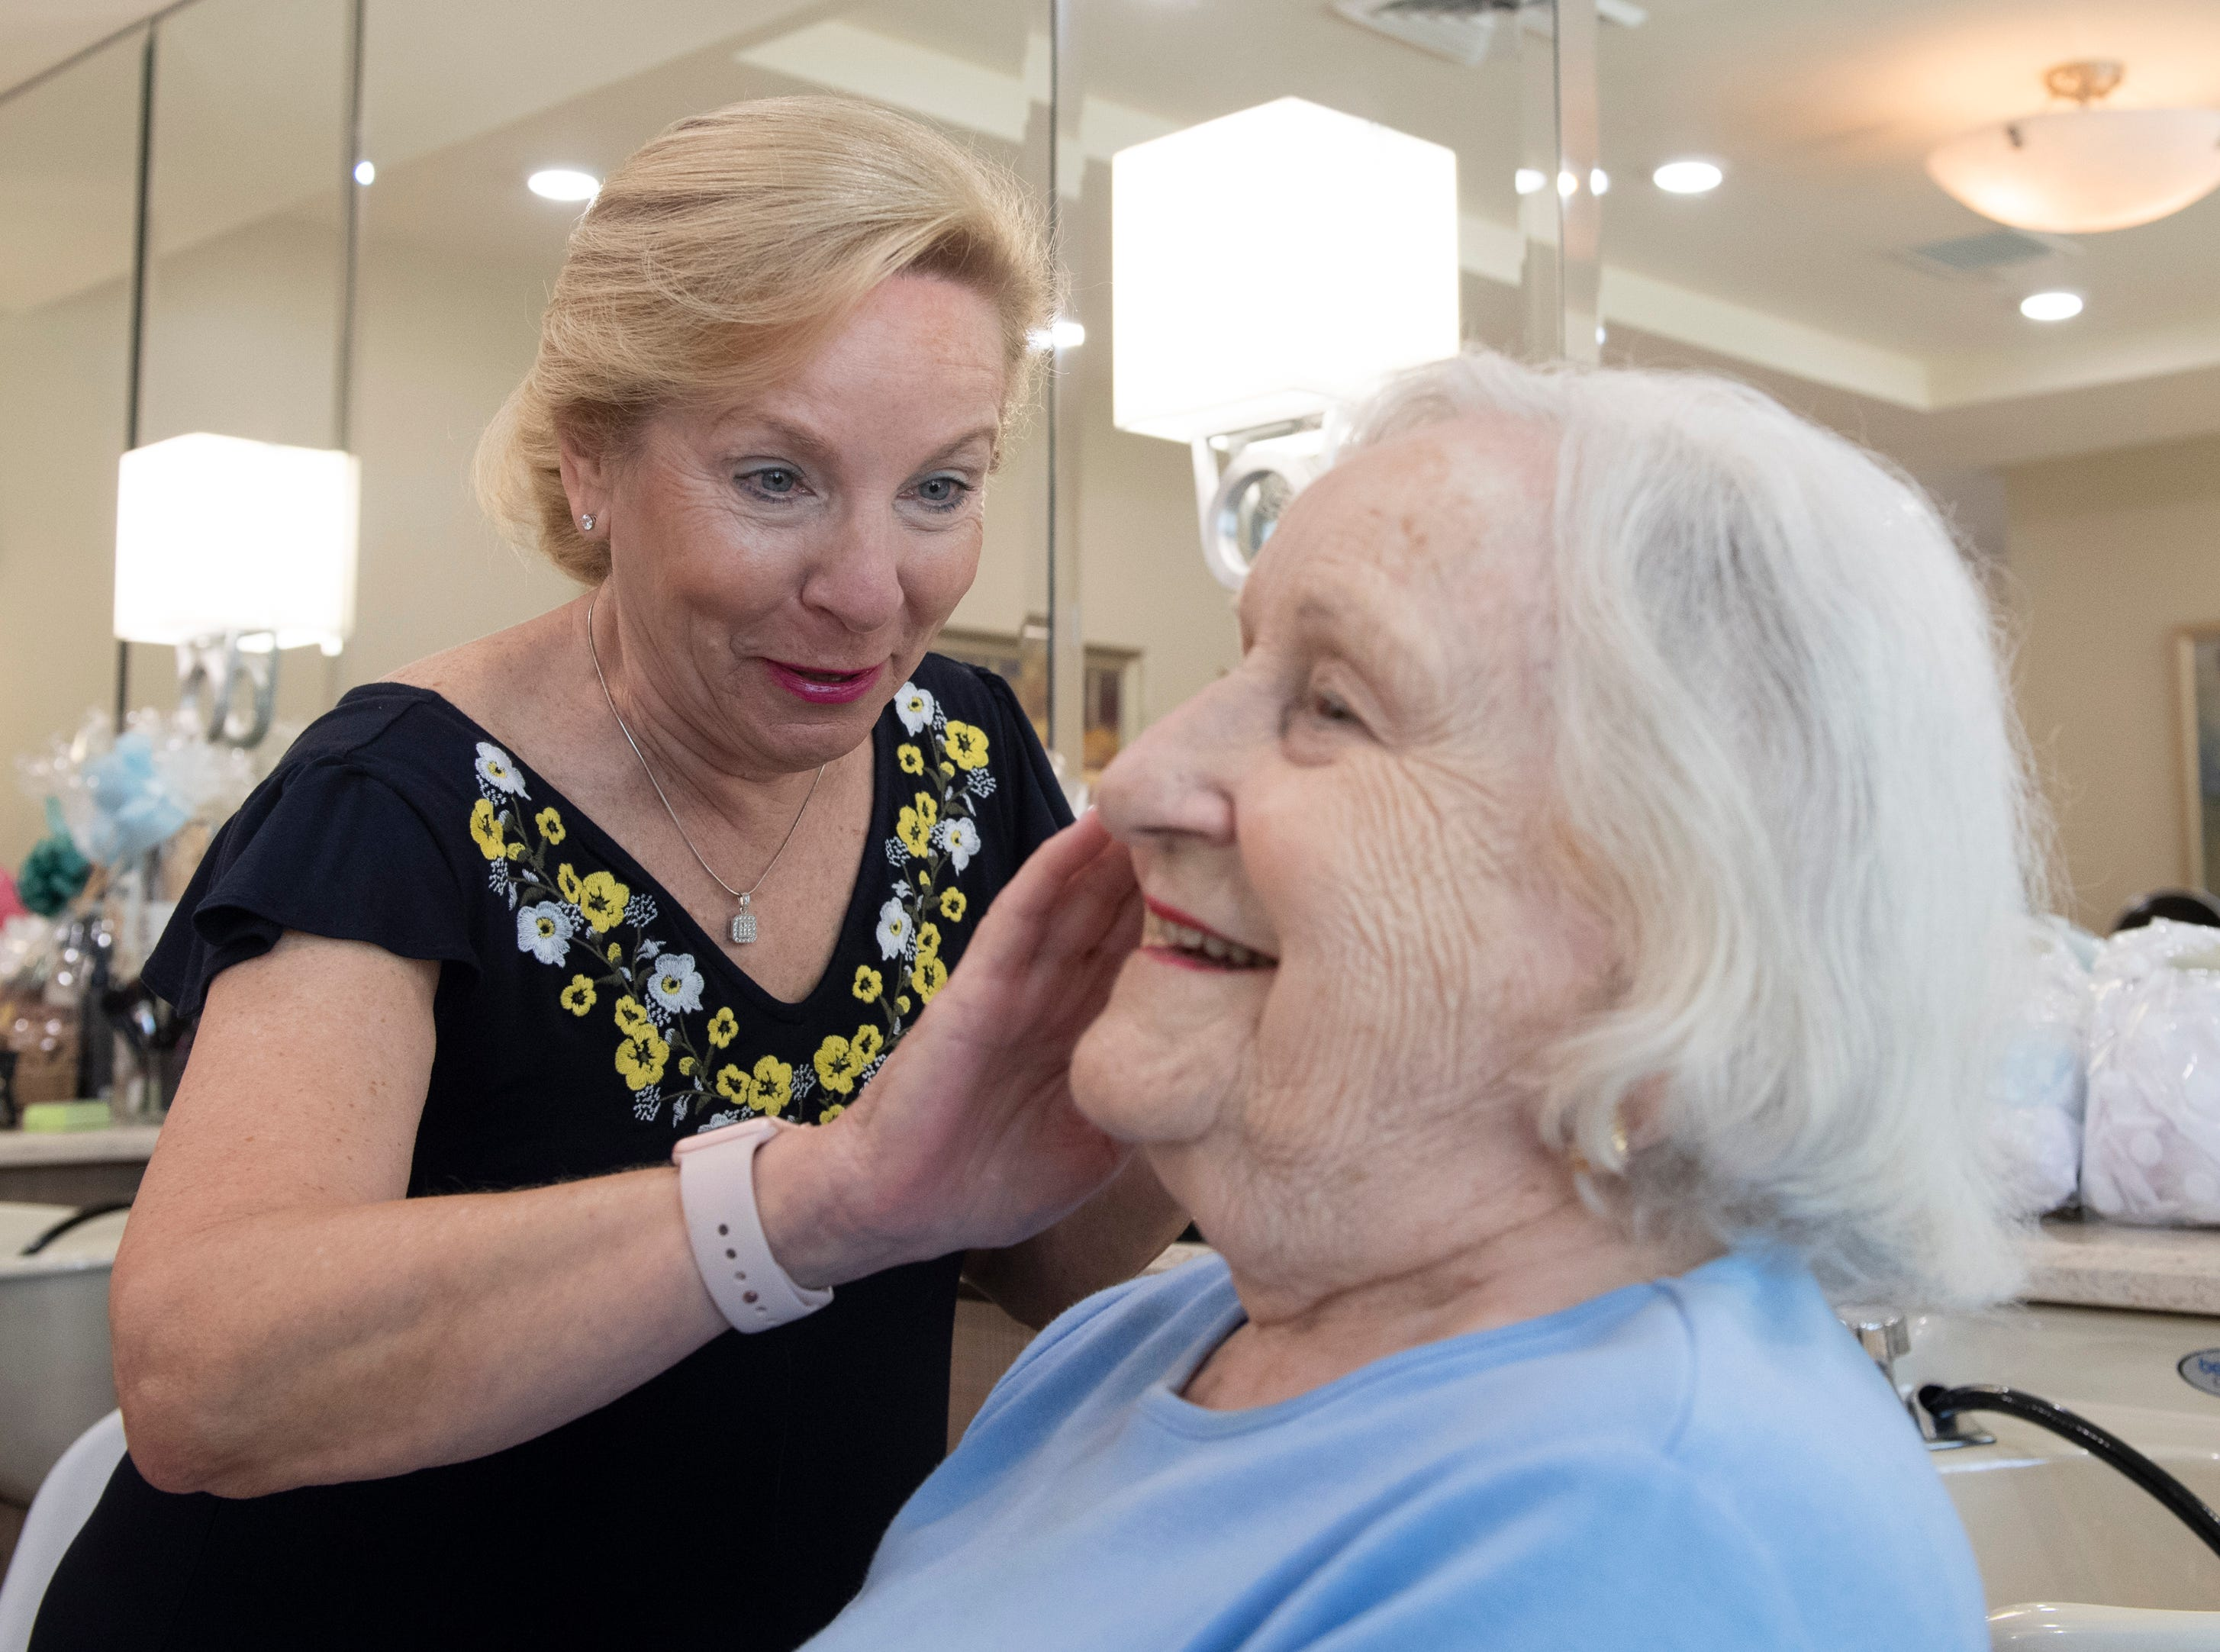 Lynn Hopple applies a face mask to her mother, Audrey White at Waterstone on Augusta Thursday, May 9, 2019. SYNERGY HomeCare of Greenville held a Mother's Day makeover party at the assisted living community. Some residents came with their daughters who applied their facials and make-up.